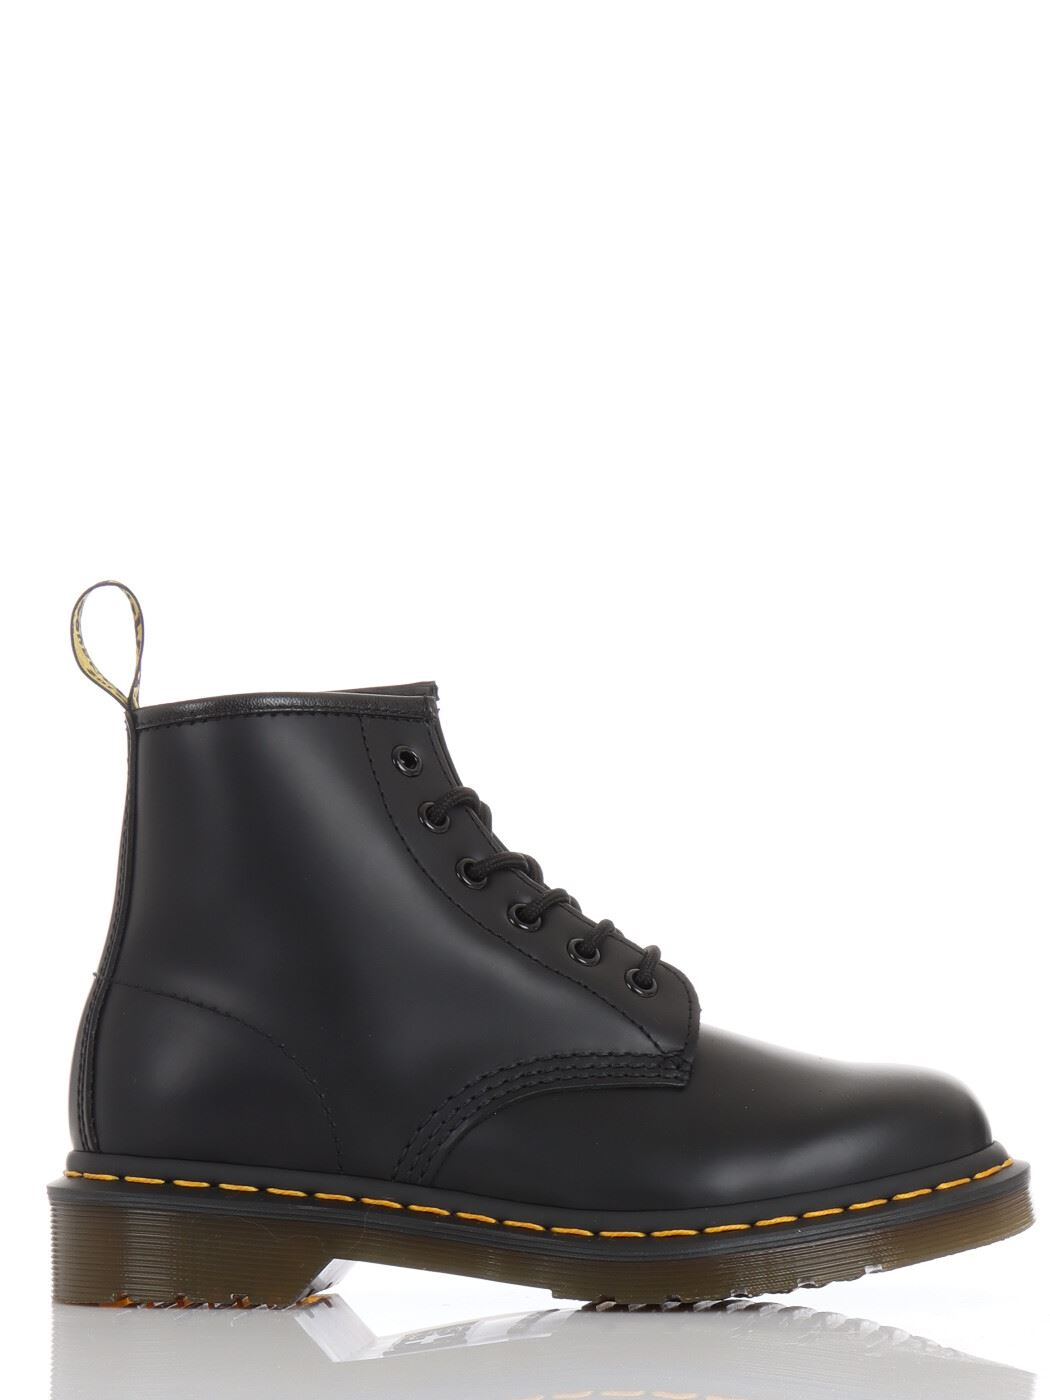 ANFIBI DR.MARTENS 101 YS SMOOTH